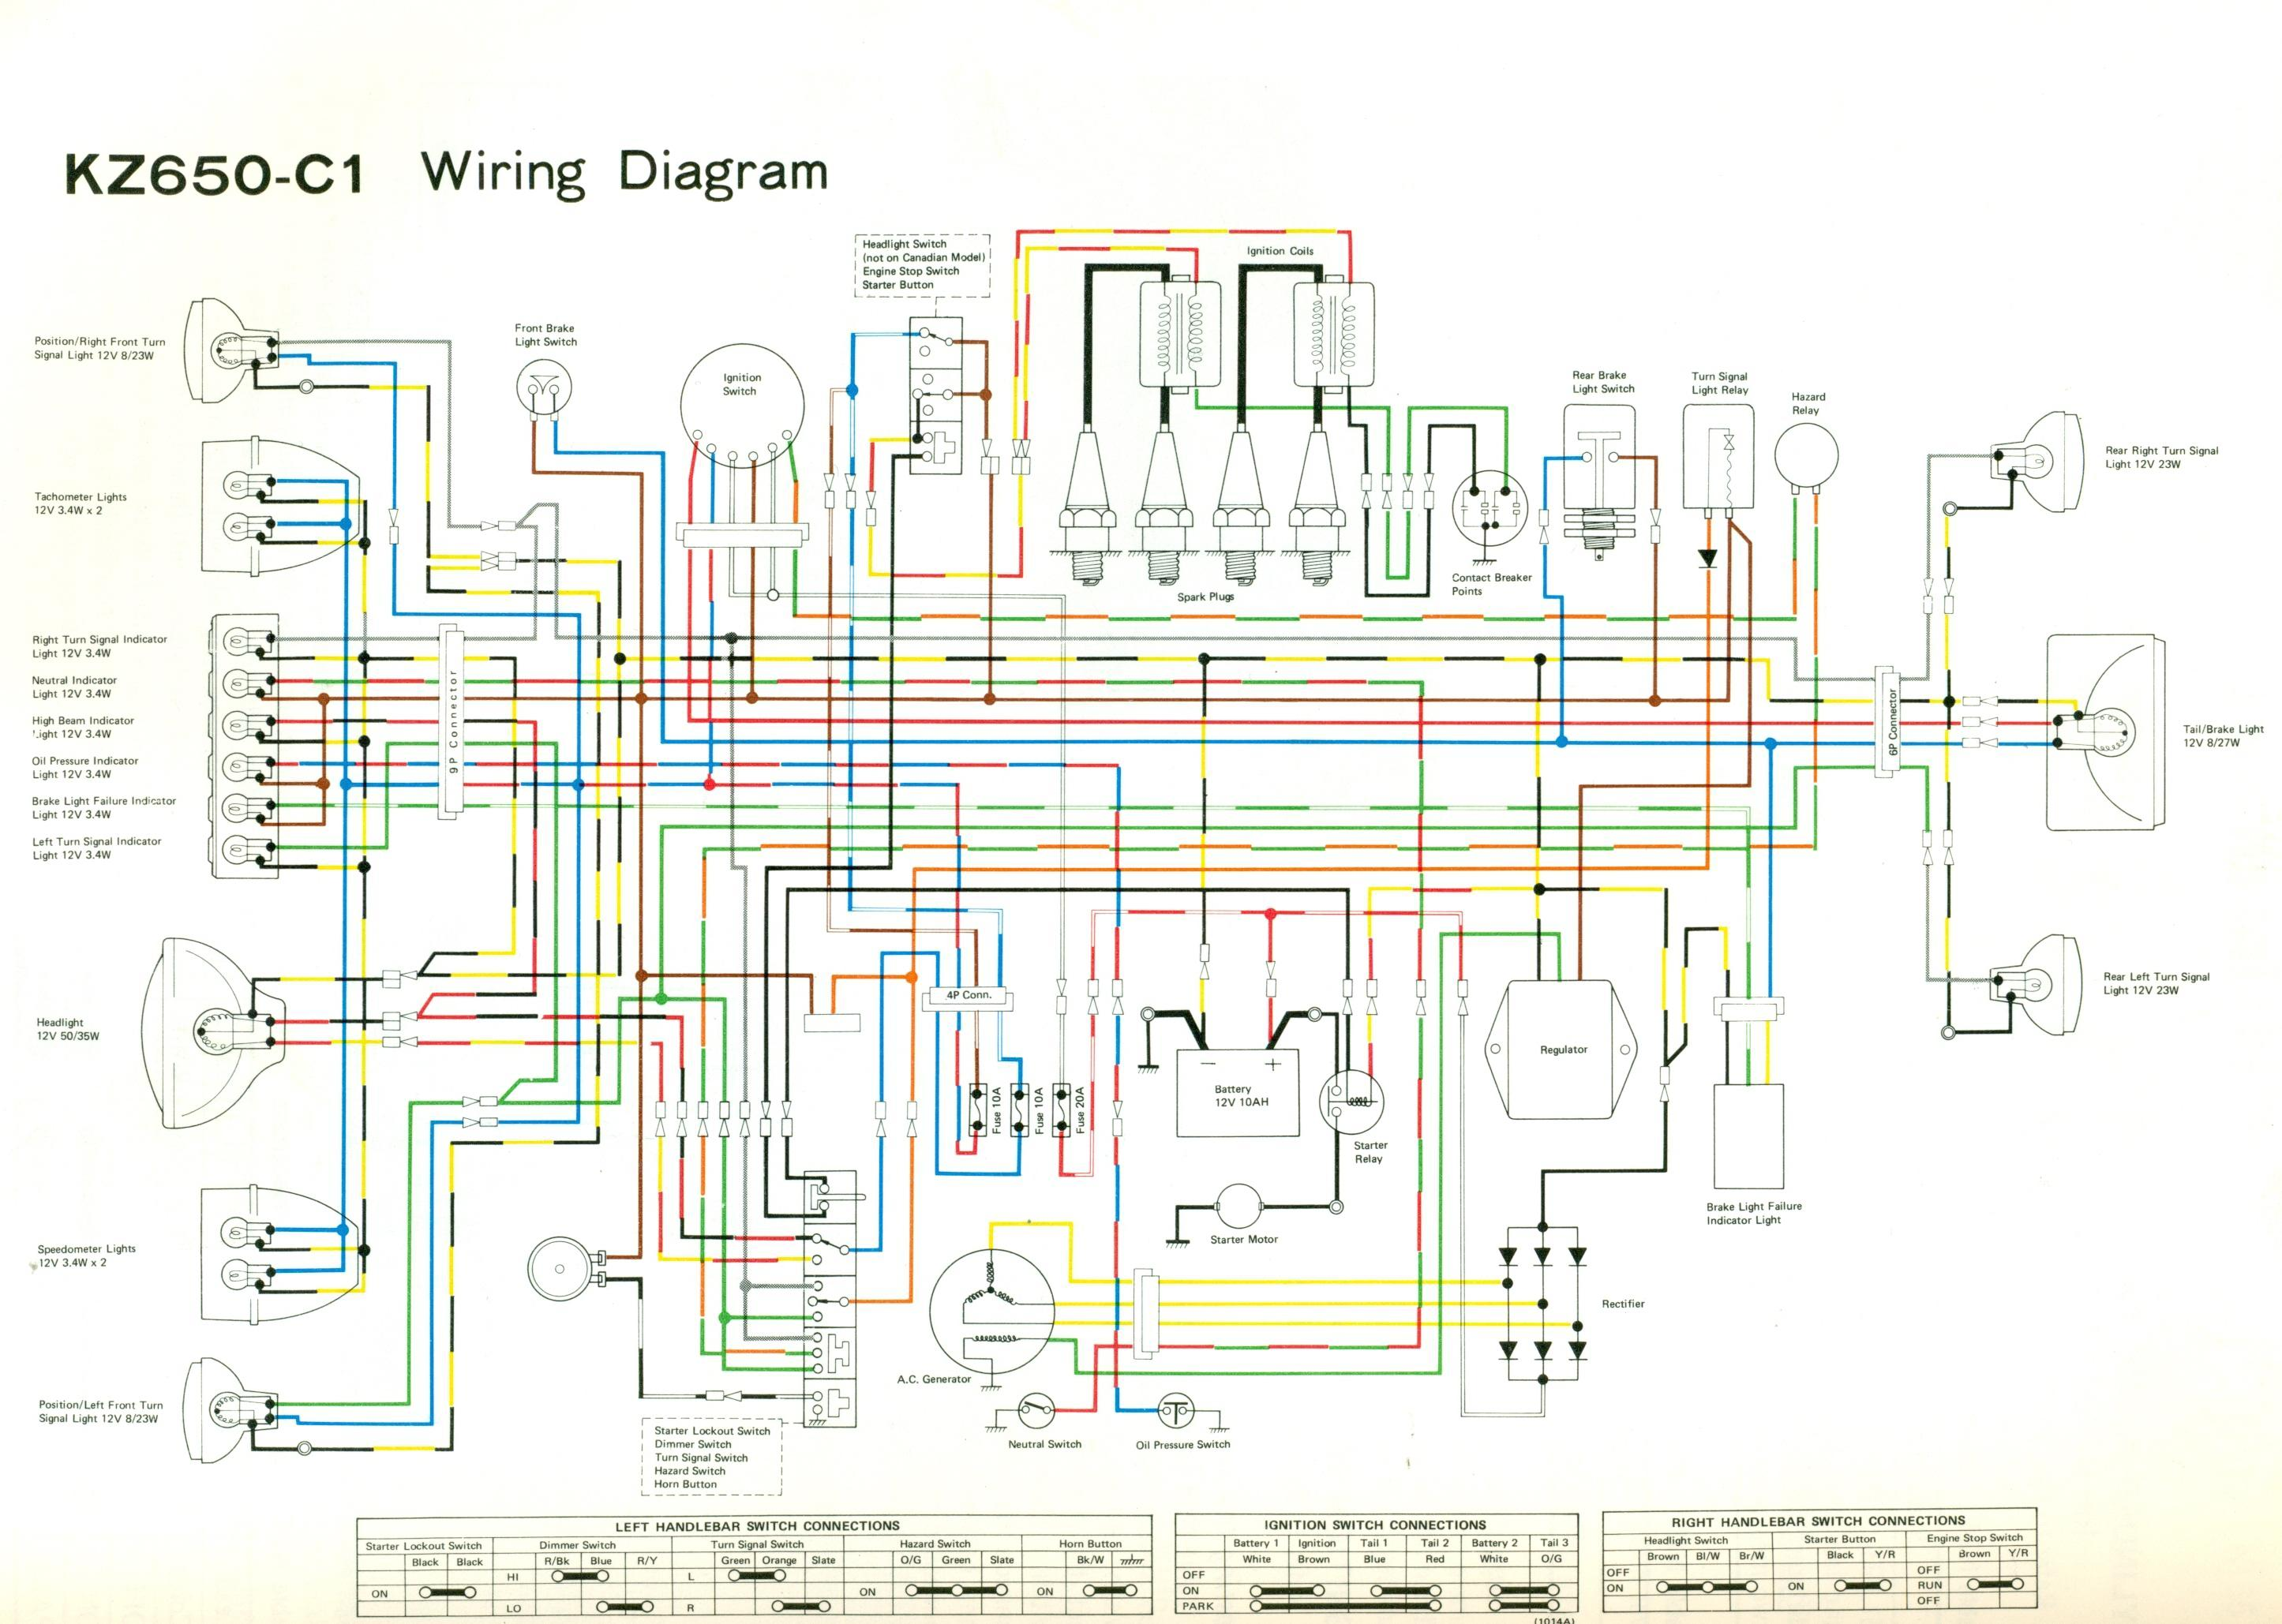 Wiring Diagrams 2003 Indian Chief Wiring Diagram Kawasaki Vulcan 2003  Cruiser Electrical Circuit Wiring Diagram